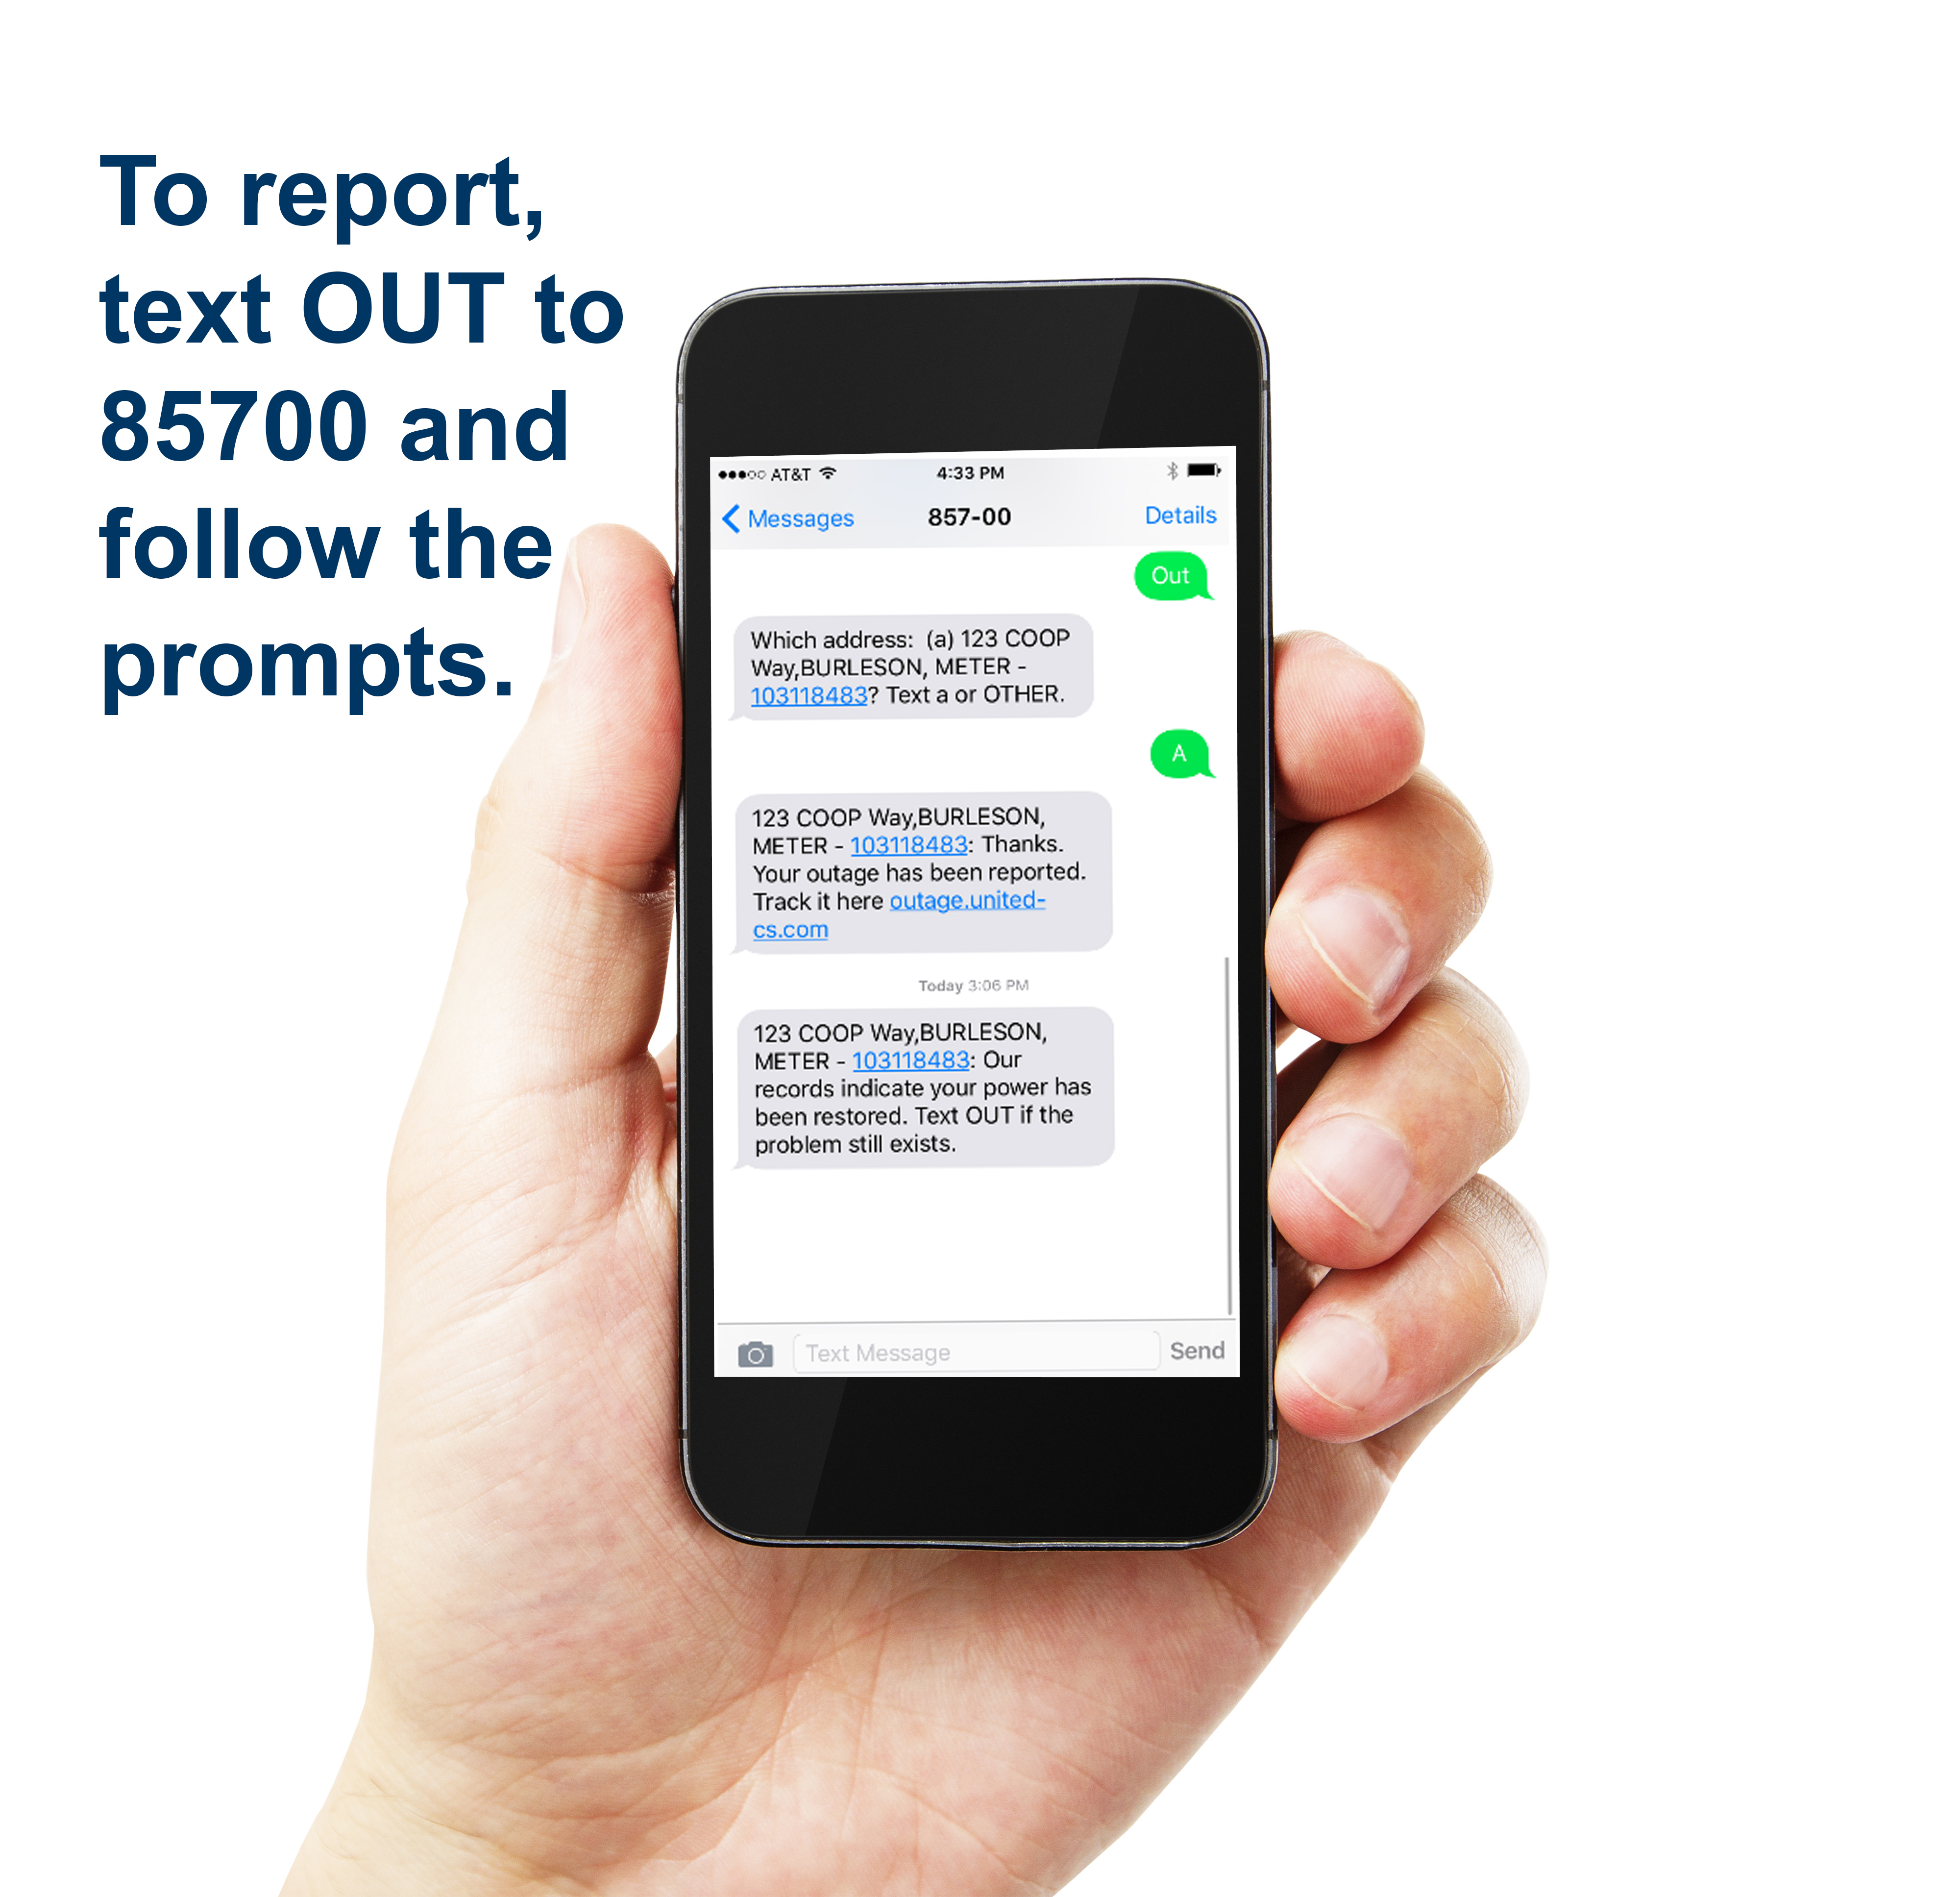 Cell phone to report an outage, text OUT to 85700